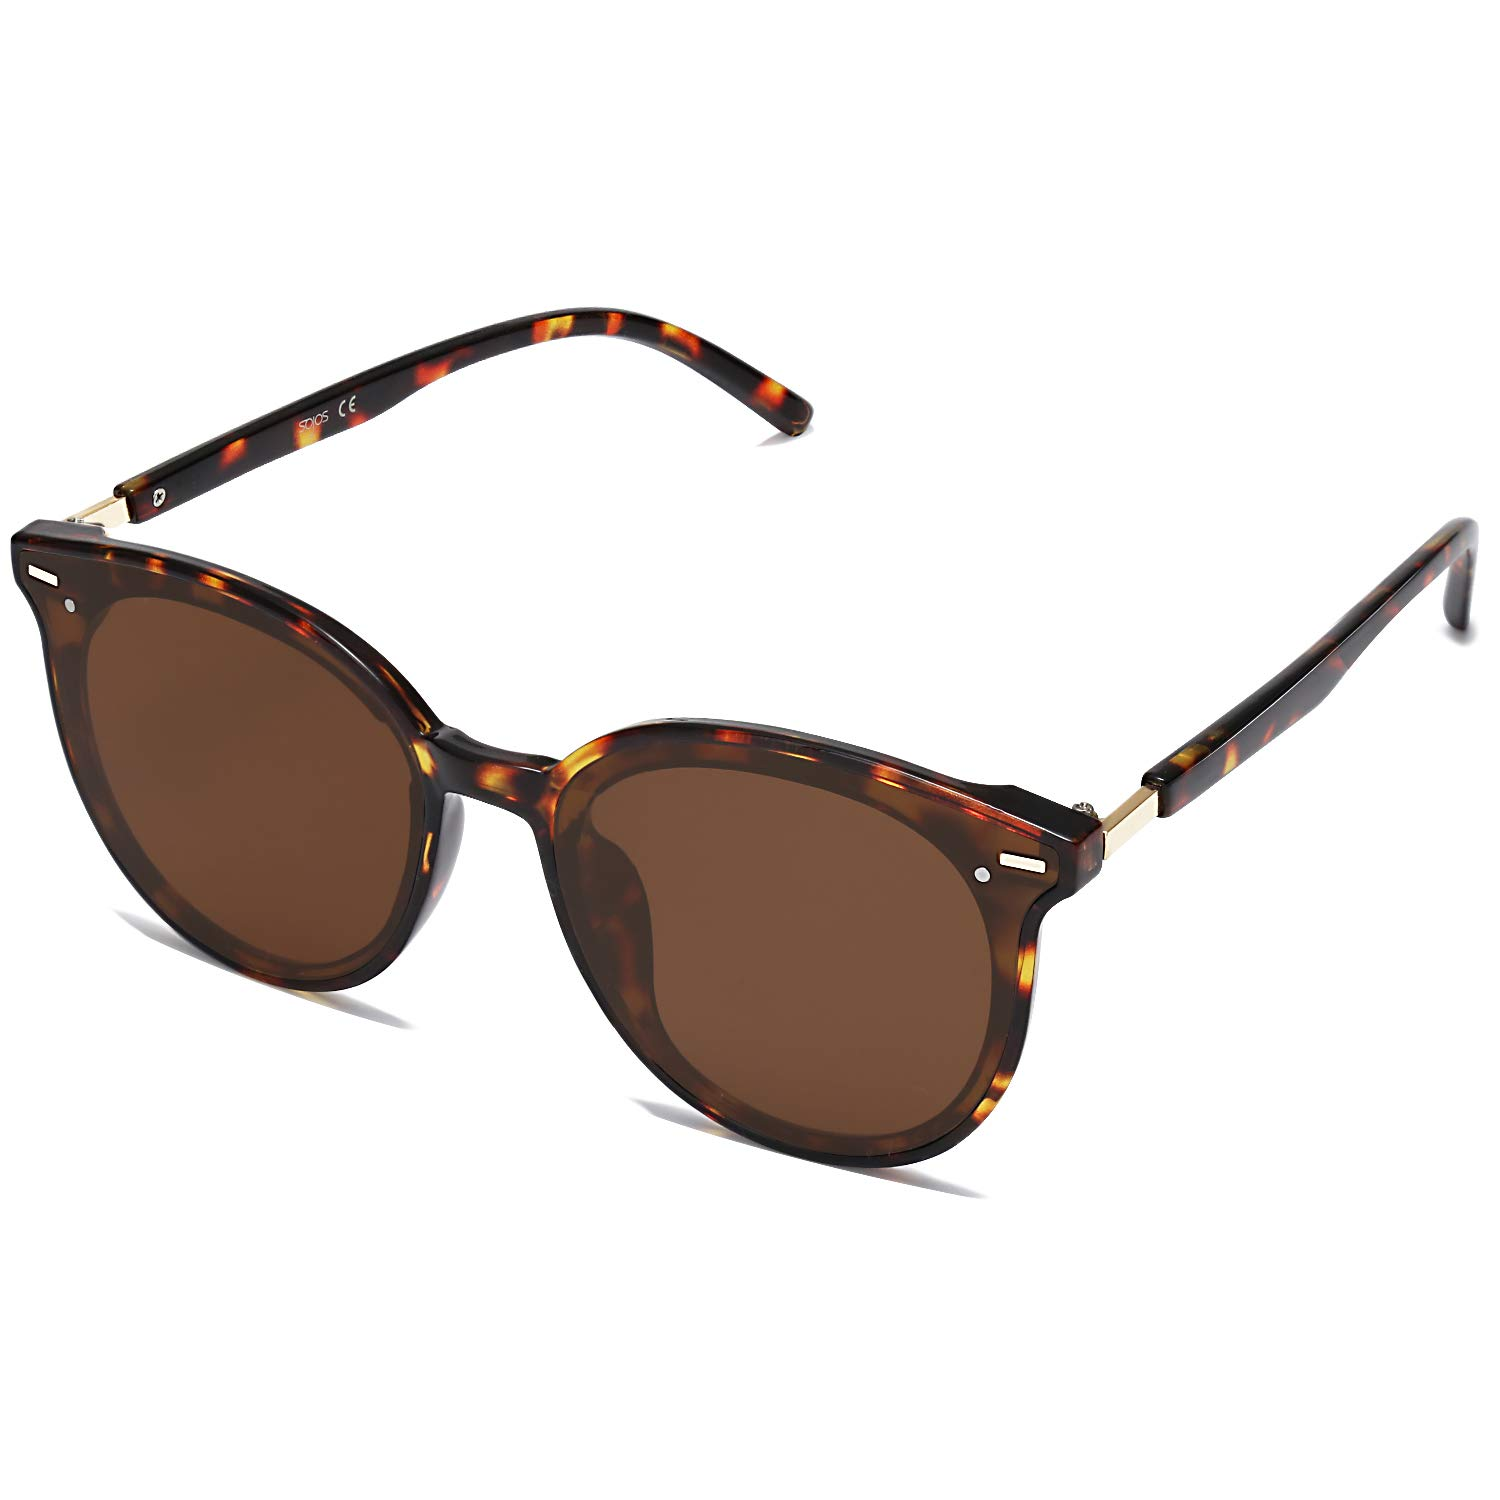 SOJOS Classic Round Retro Plastic Frame Vintage Inspired Sunglasses BLOSSOM SJ2067 with Tortoise Frame/Gradient Brown Lens by SOJOS